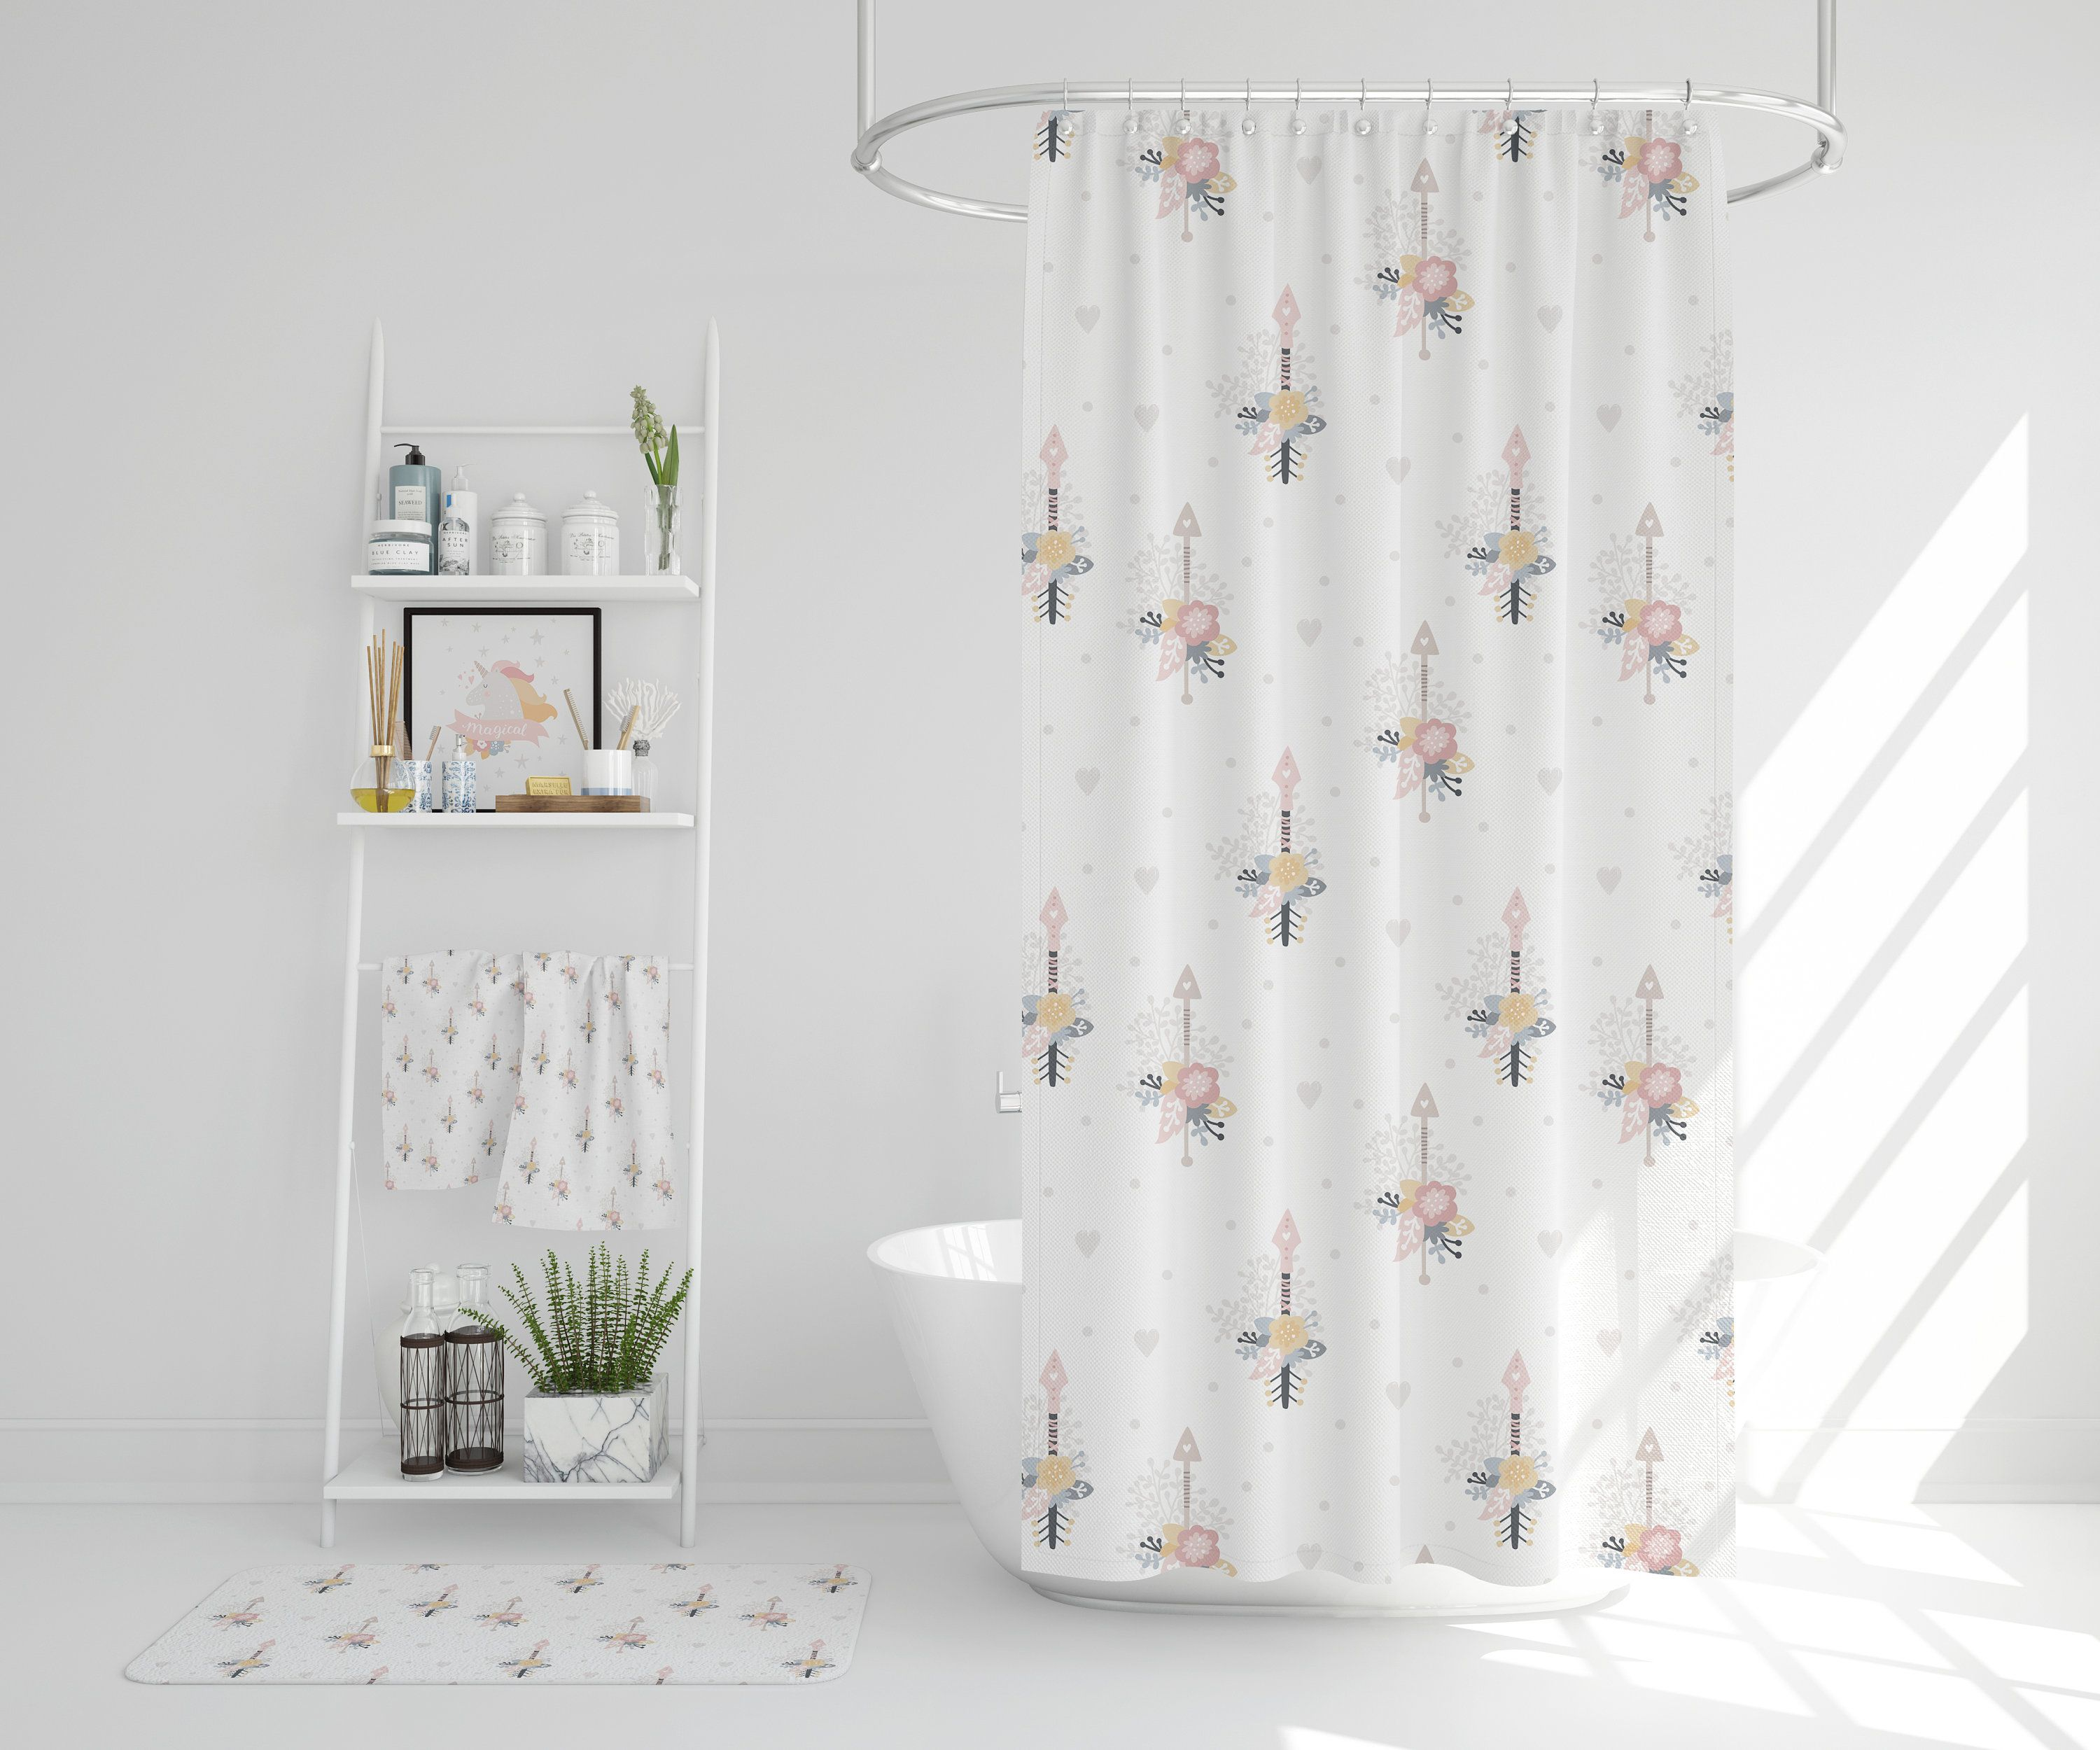 Shower Curtain Funny Kids Shower Curtain Scandinavian Design Etsy In 2020 Kids Shower Curtain Funny Shower Curtains Girls Shower Curtain